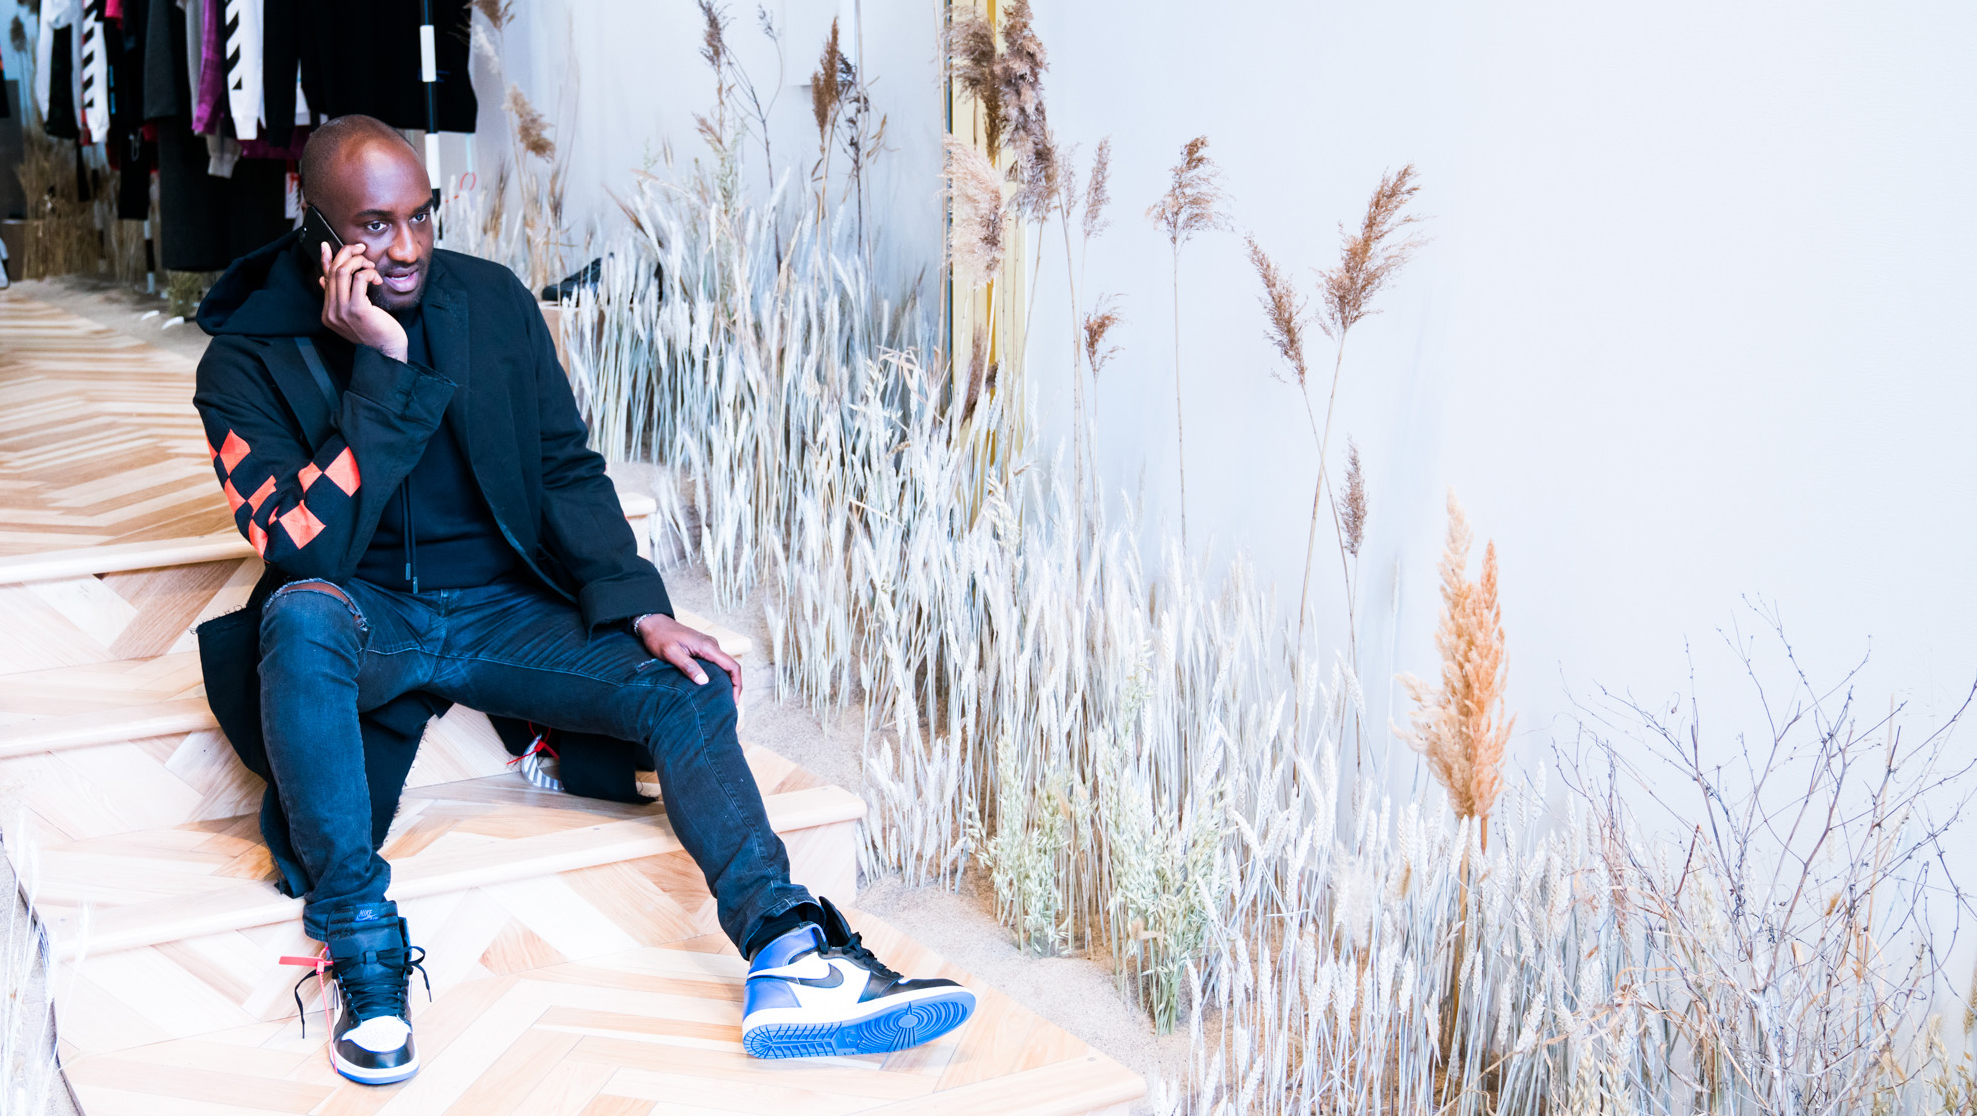 Virgil Abloh and Nike Finally Confirm They've Been Collaborating